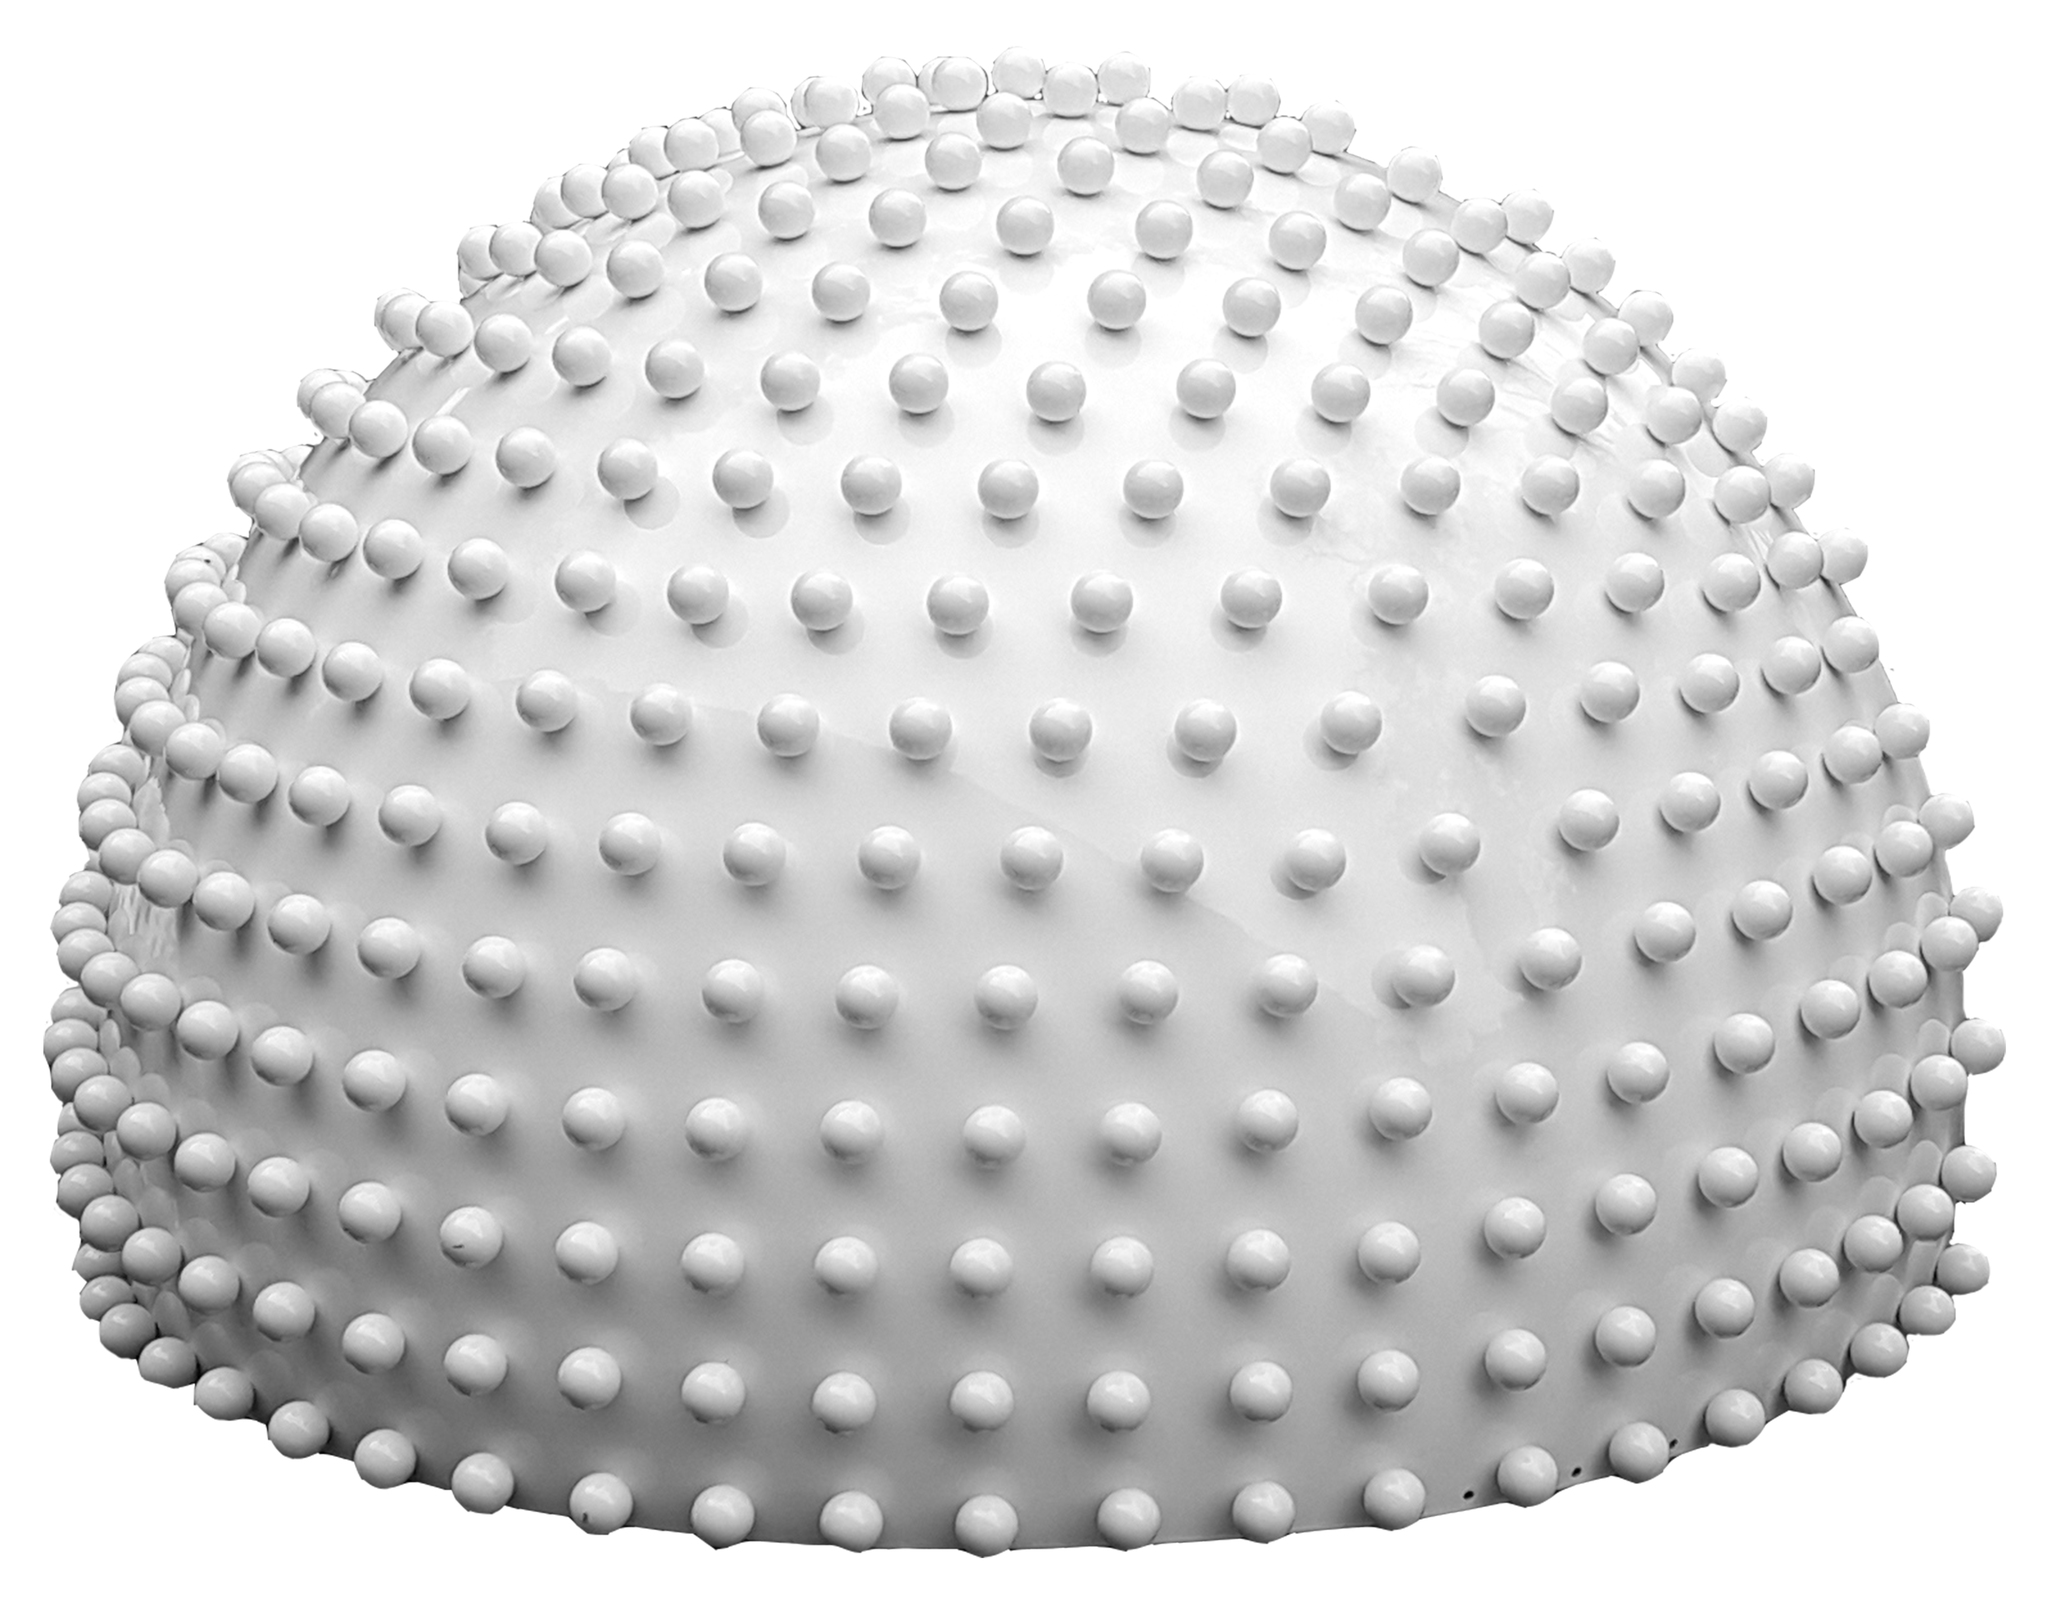 Semisphere, white, matt, with small spheres, Ø = 0,06m